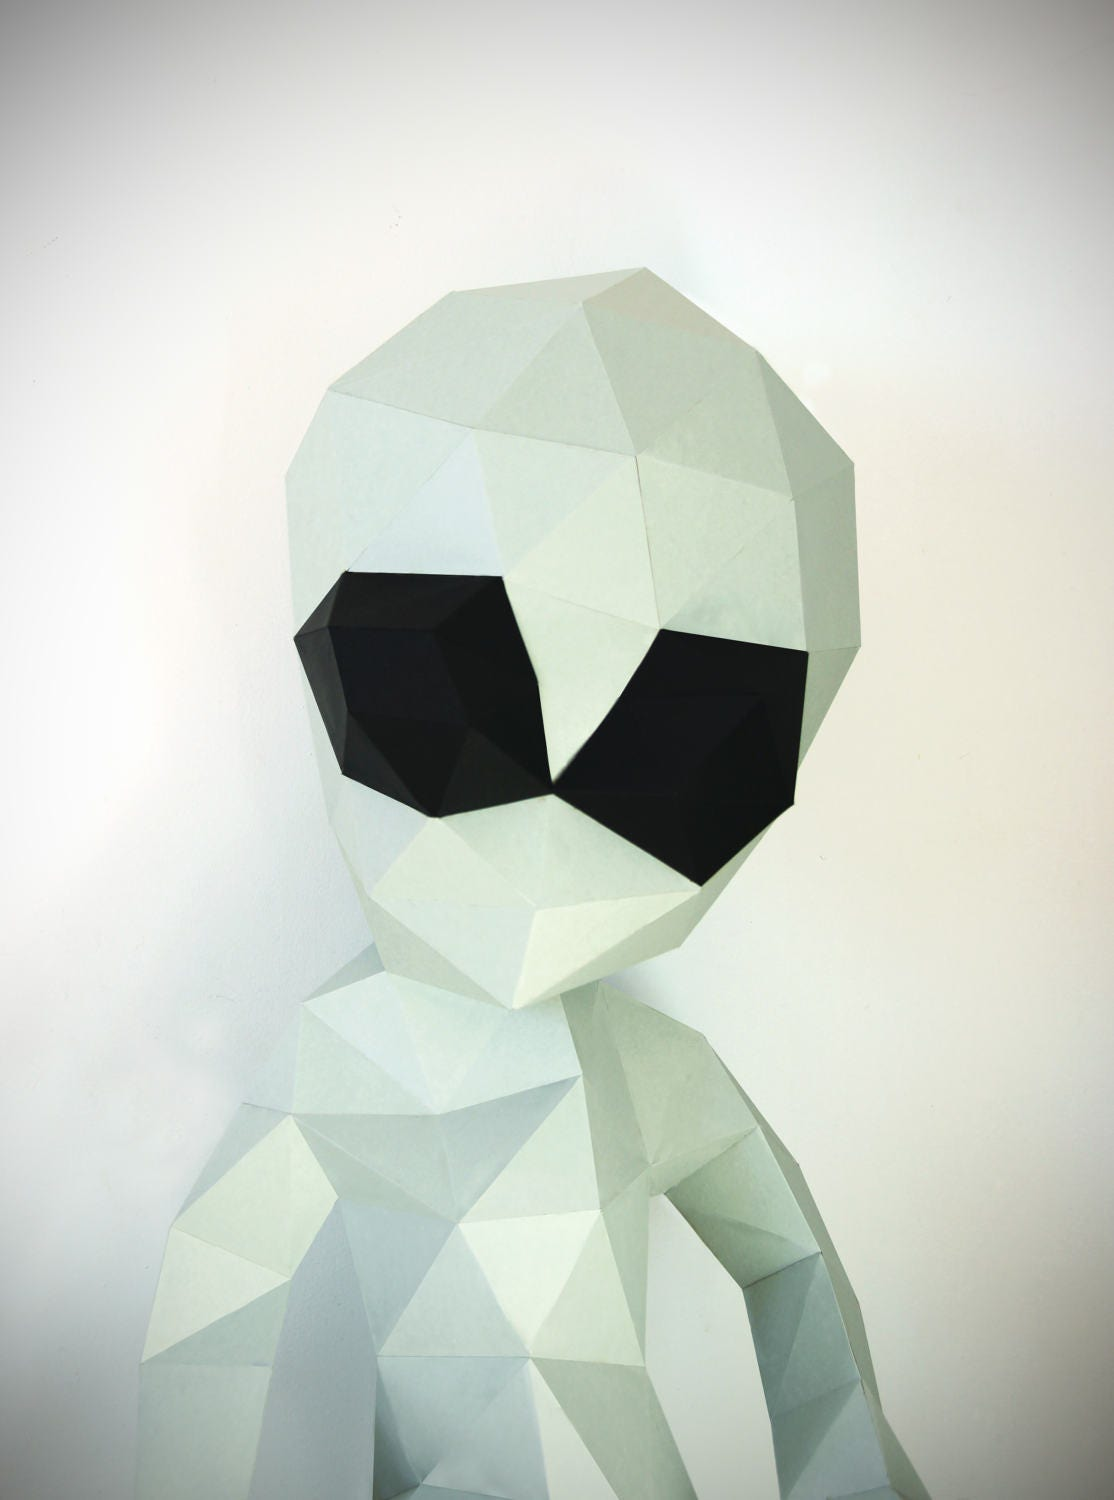 alien papercraft pdf template and instructions 3dpuzzle